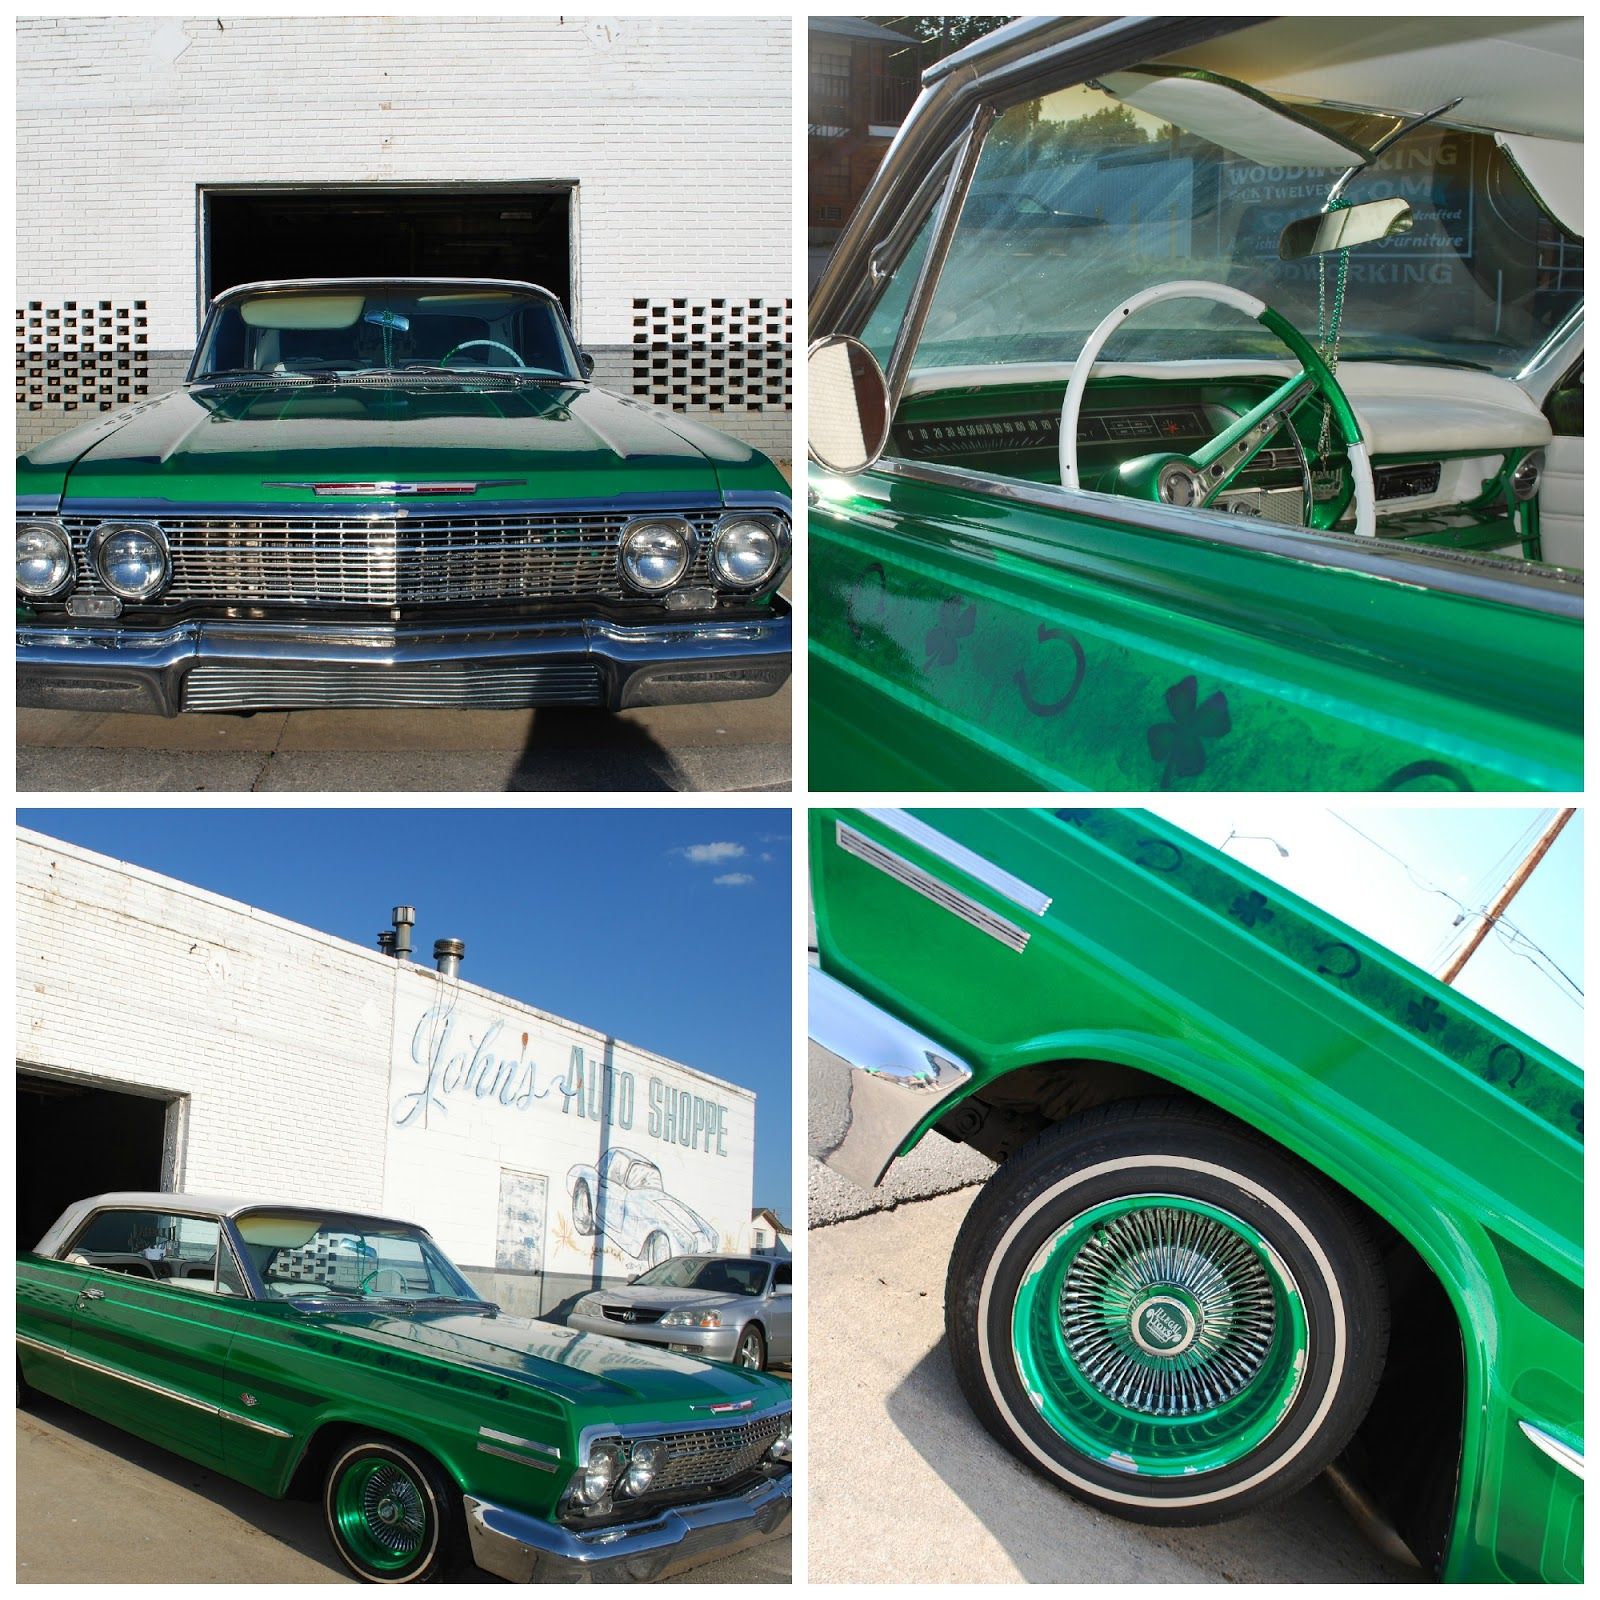 Green Low Rider with Shamrocks